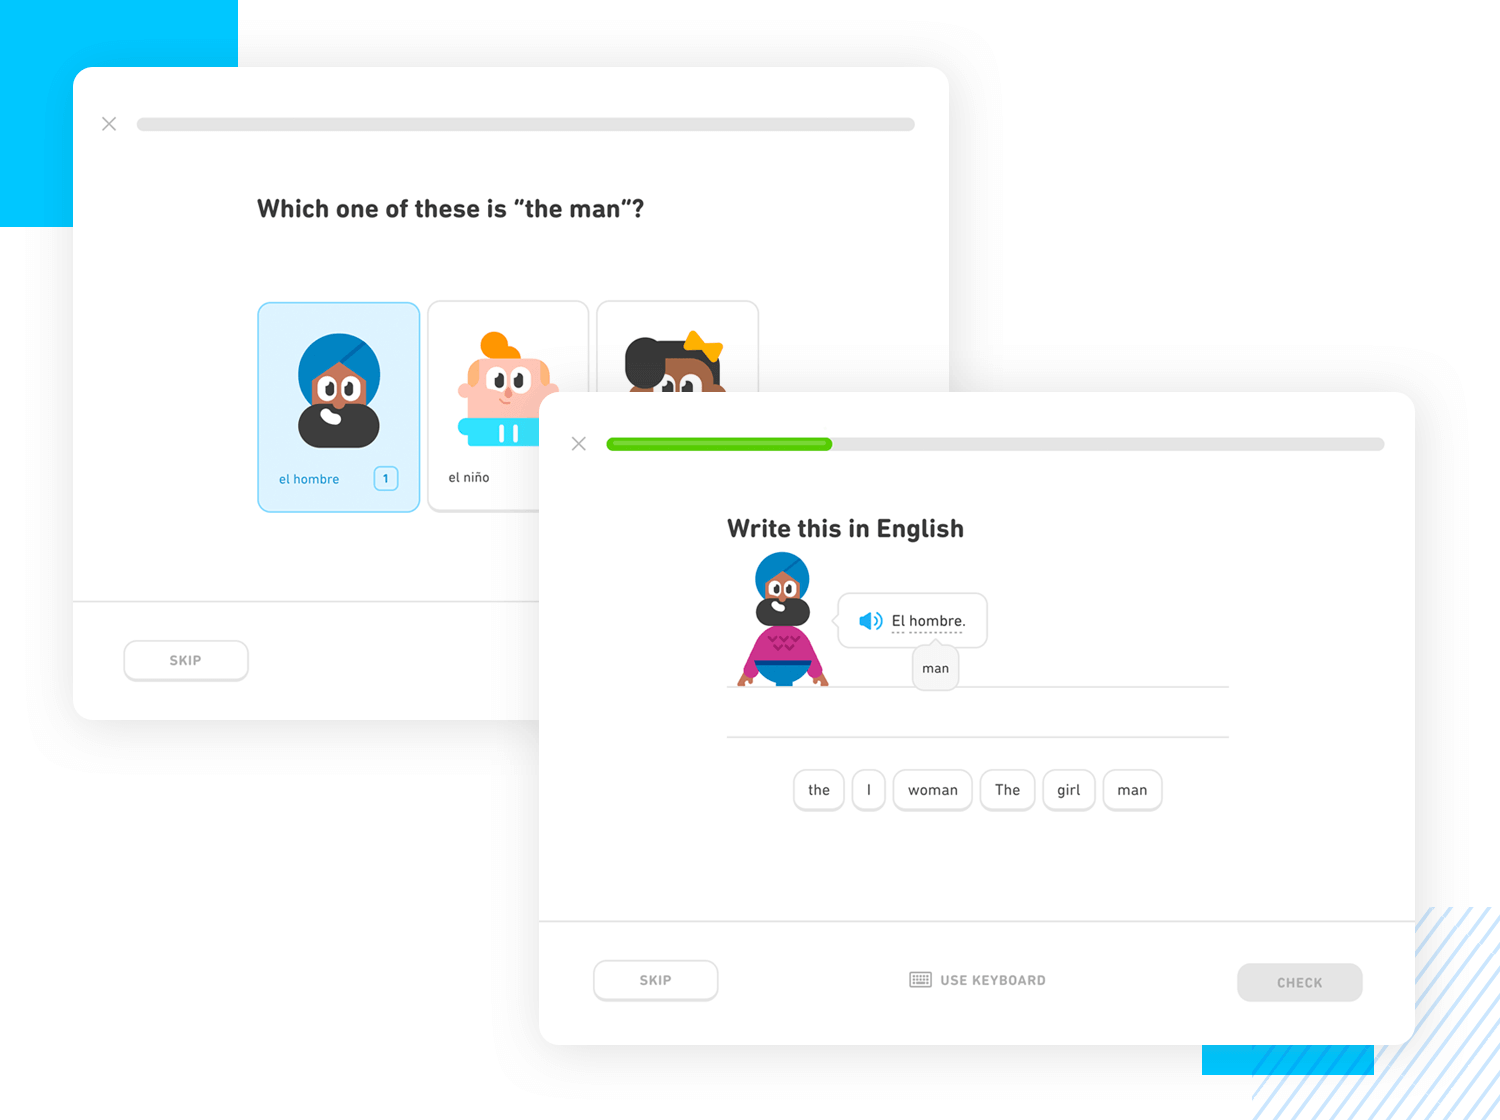 progressive learning example of duolingo